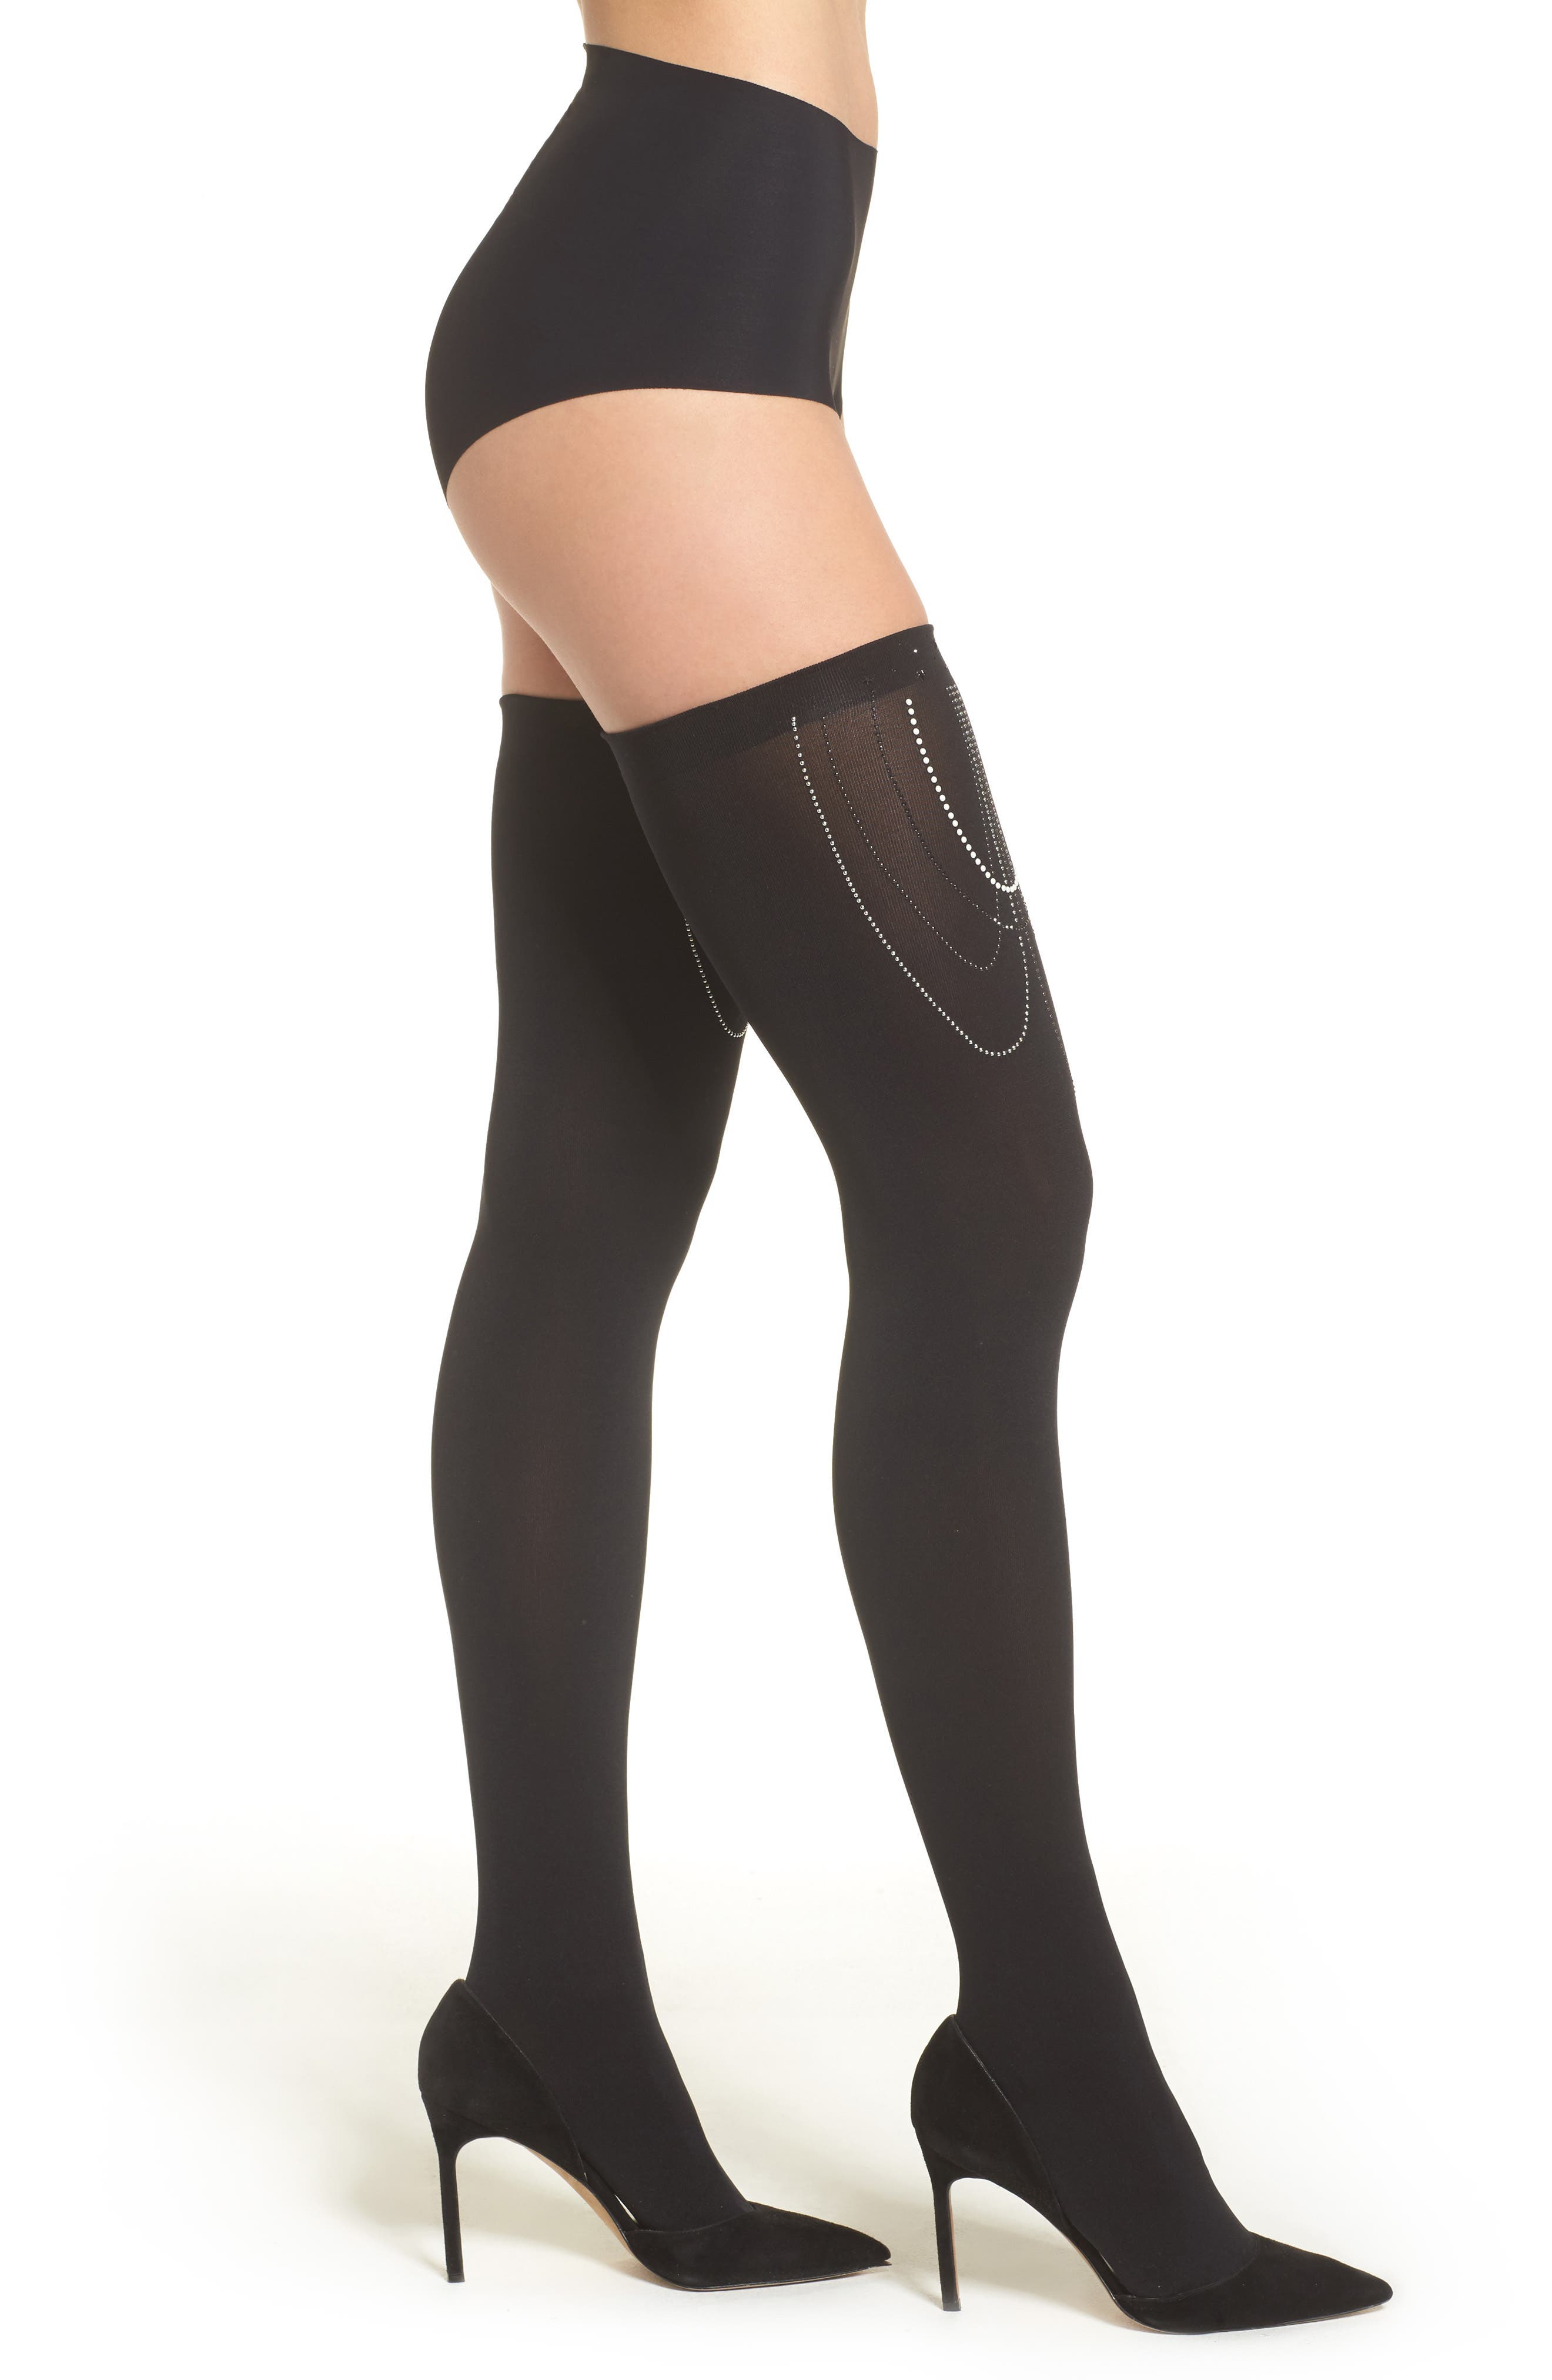 Embellished Stay-Put Stockings,                         Main,                         color, Black